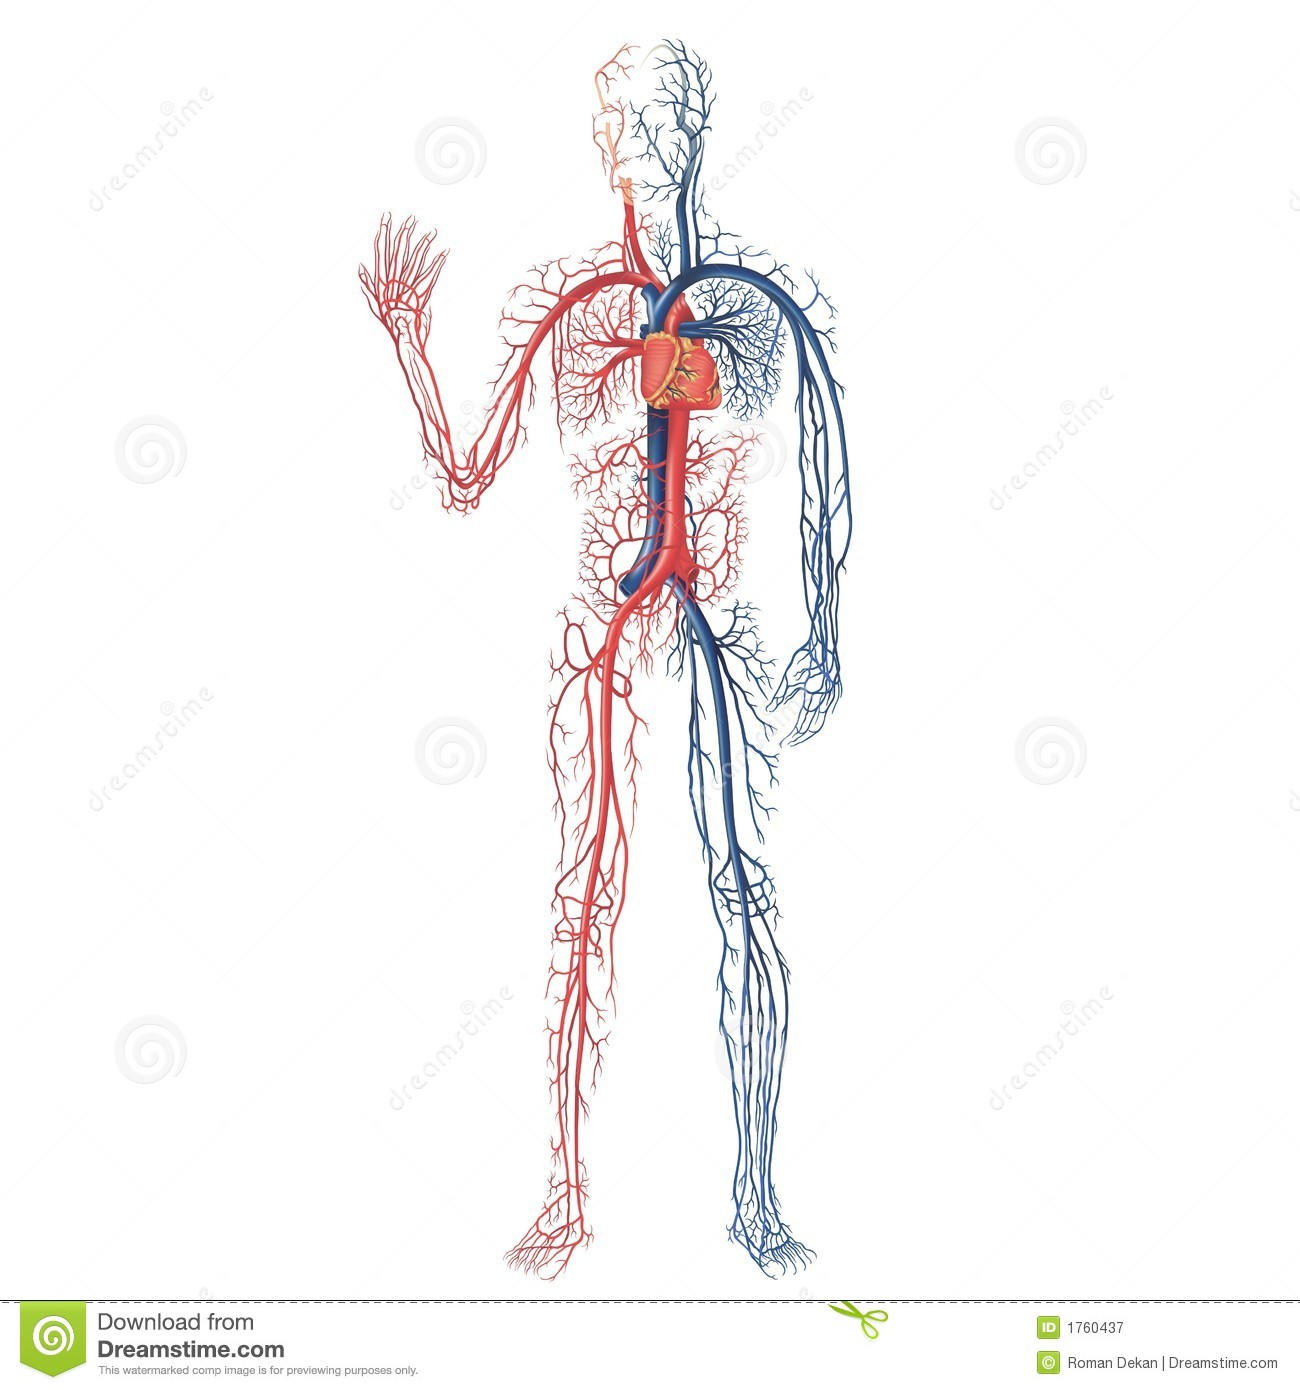 Vascular System Royalty Free Stock Photography - Image: 1760437